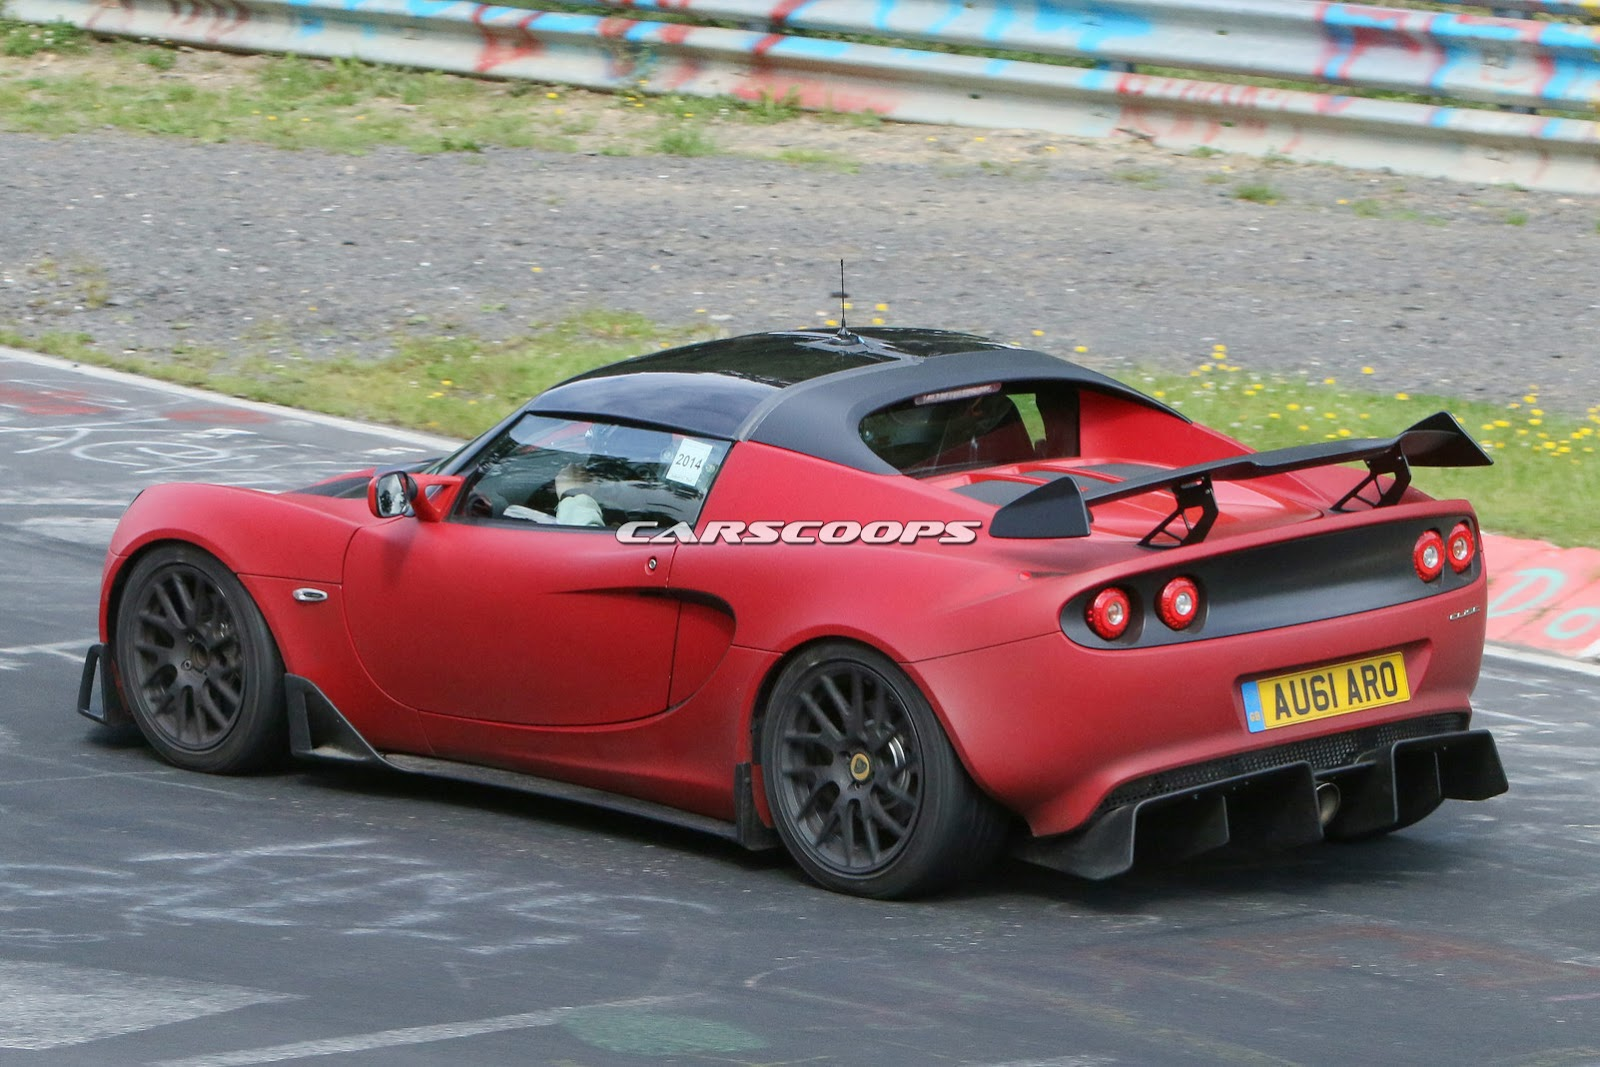 2019 Lotus Elise S Cup R photo - 3